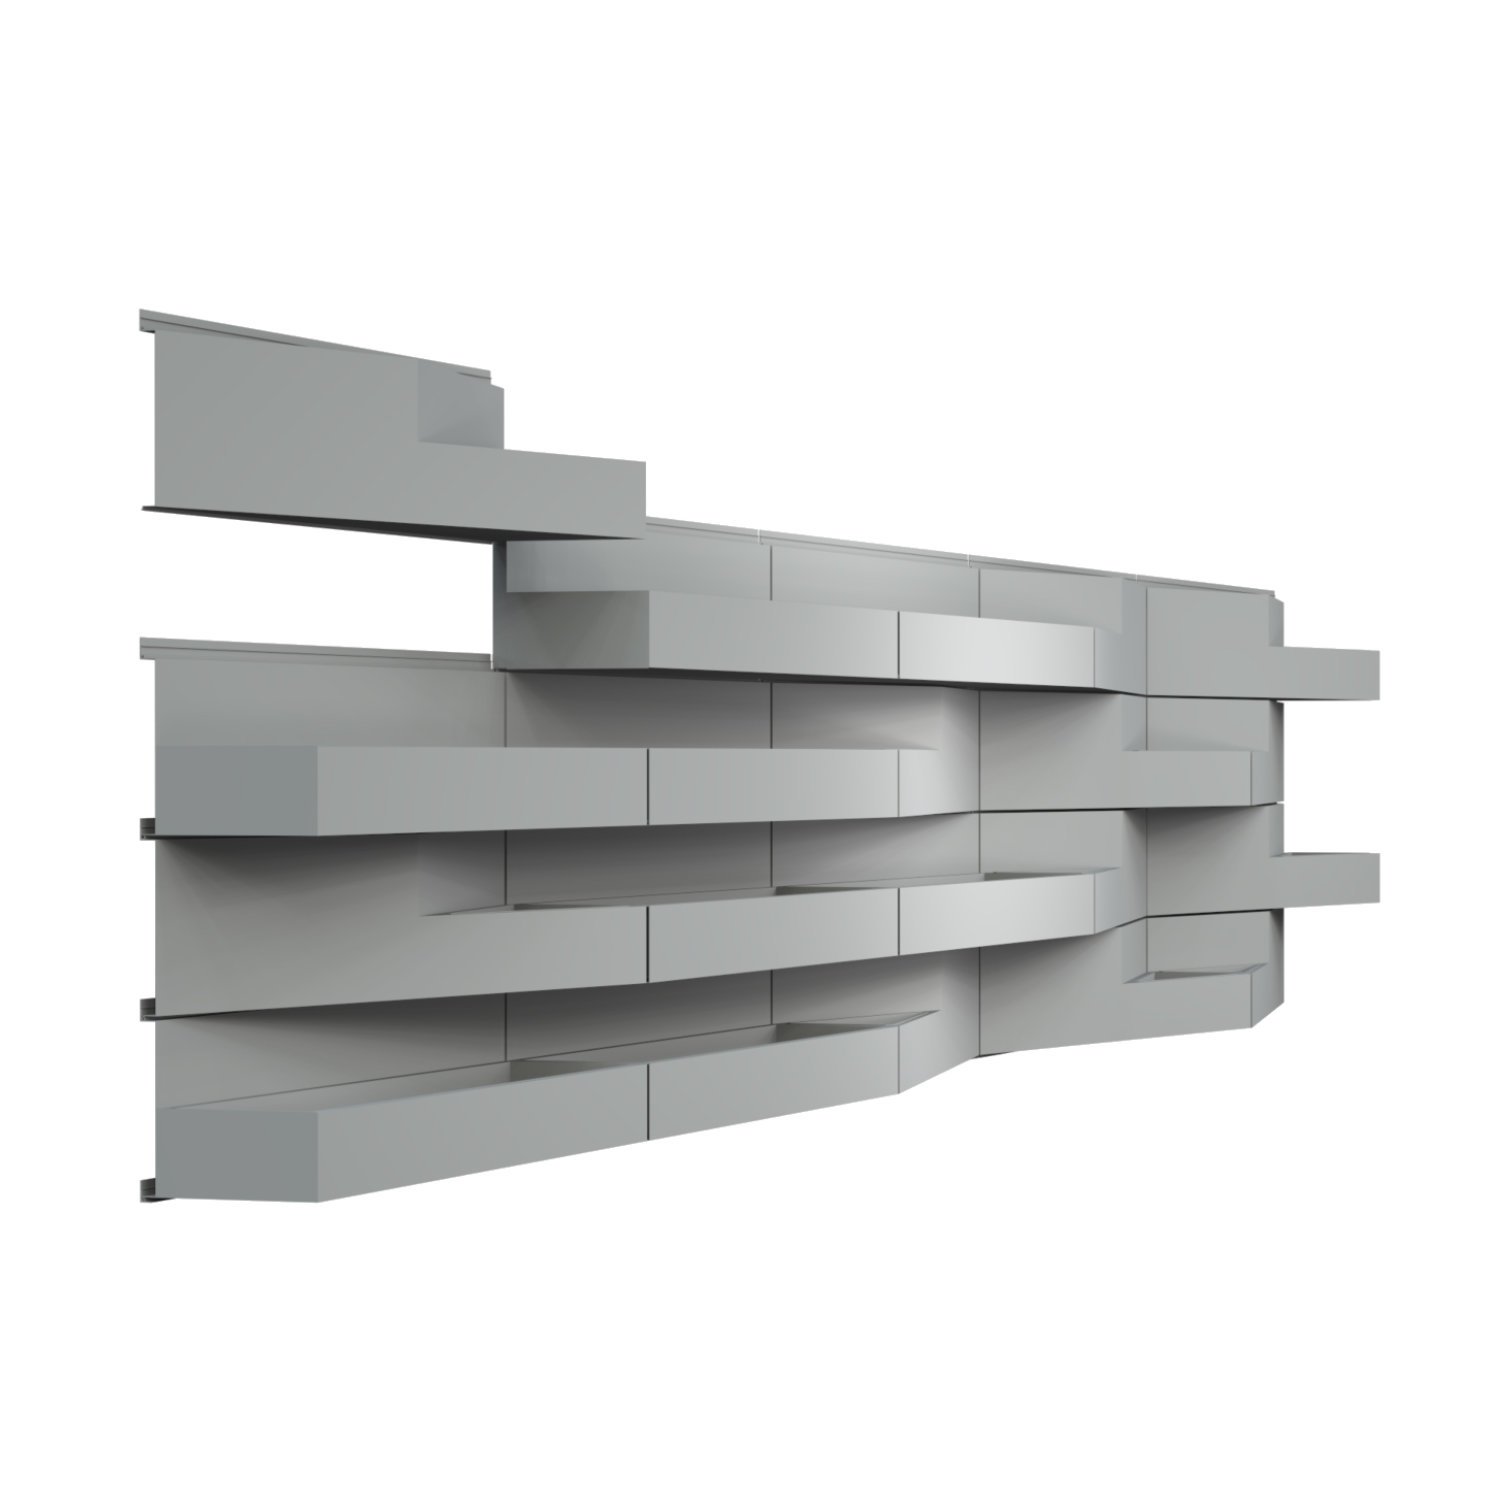 Sculpted 3D Sculpted 3D rainscreen metal panel systems - Ribbon